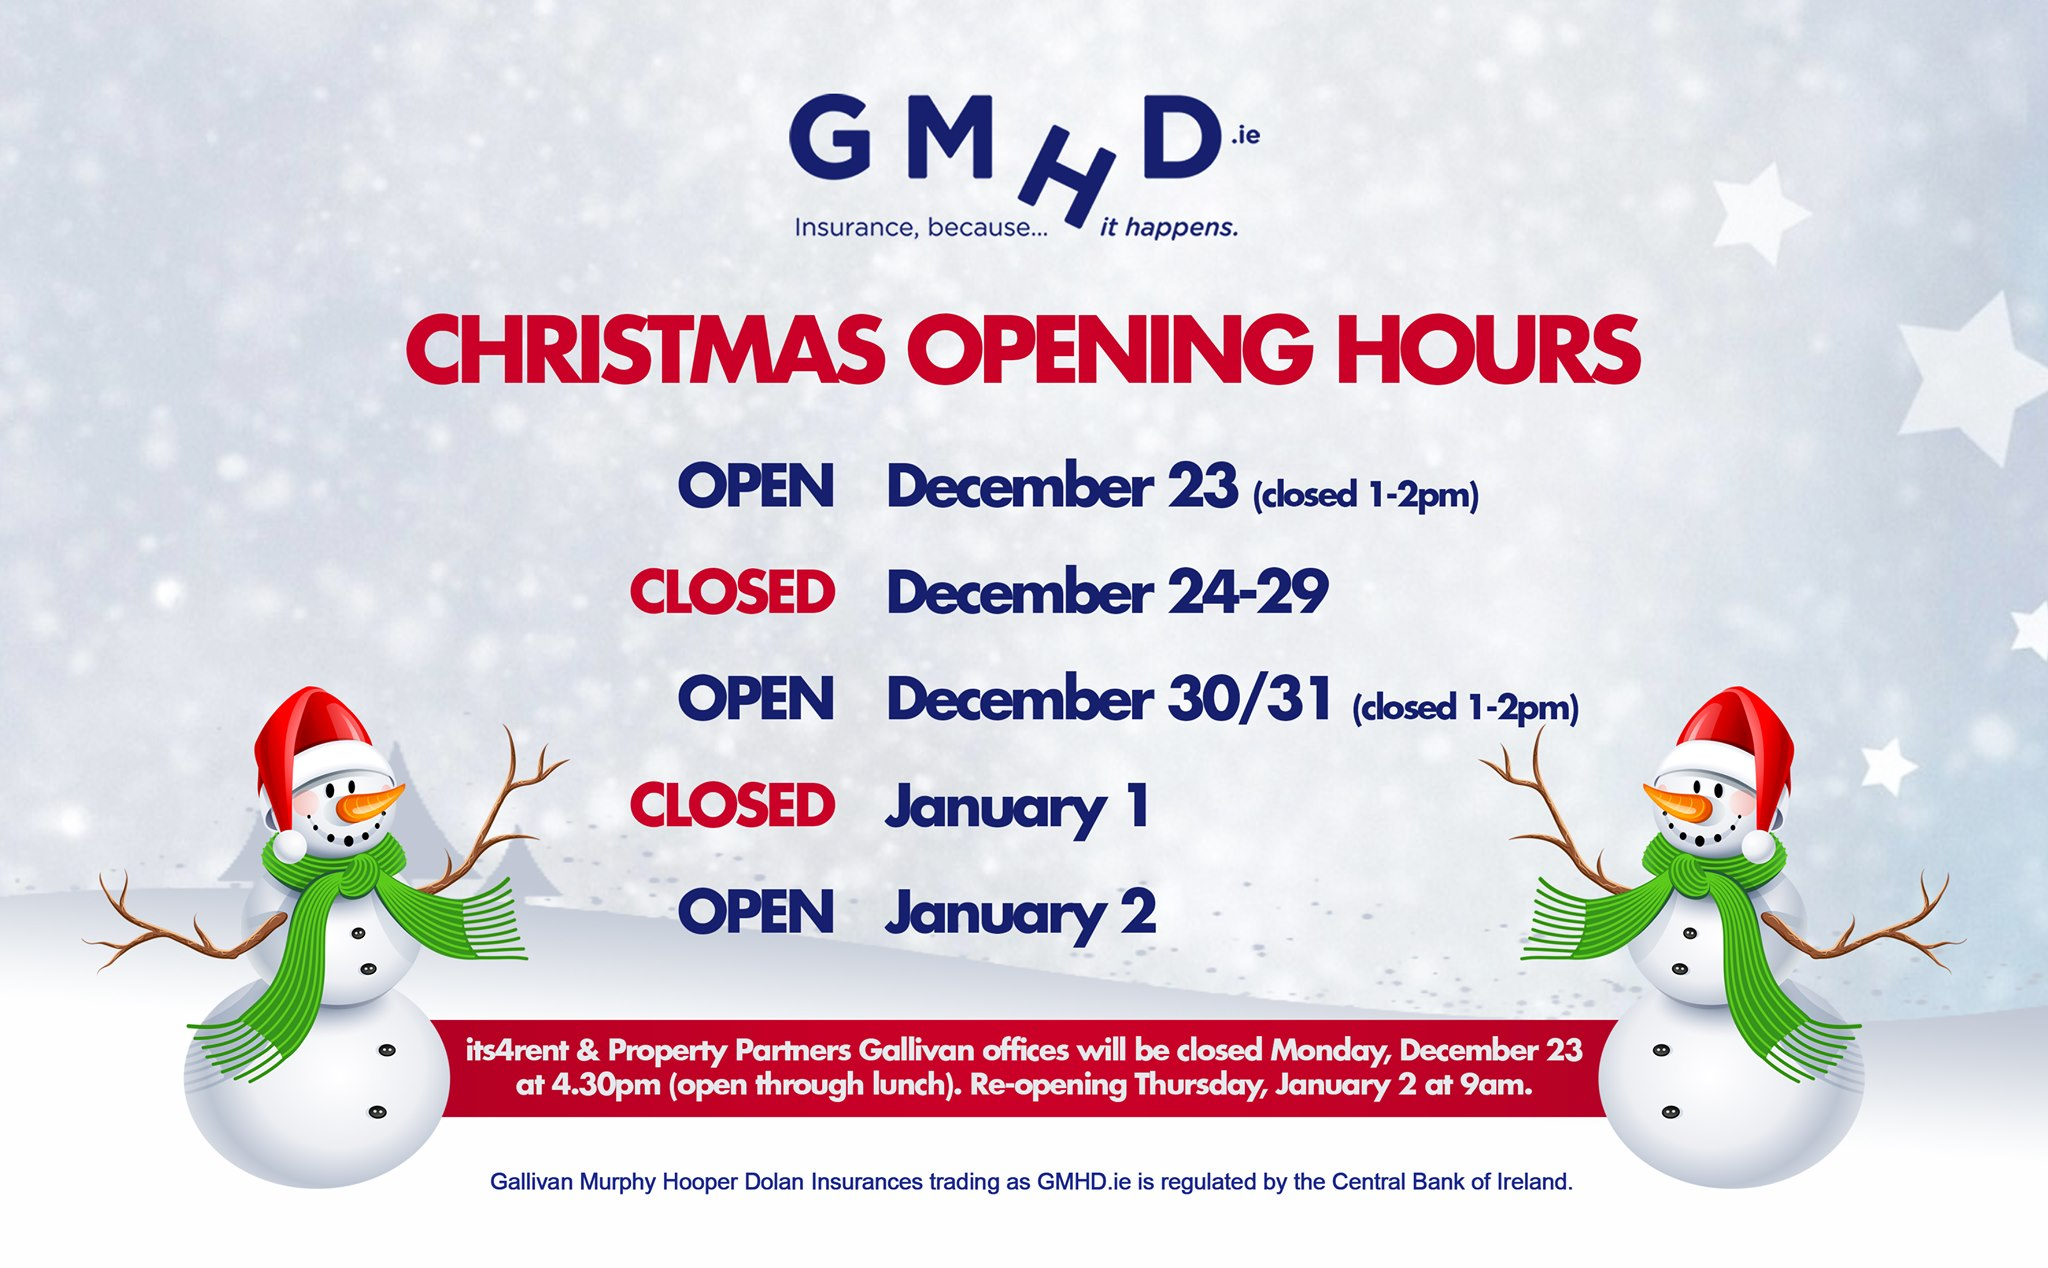 Christmas-Opening-Hours-at-GMIBie